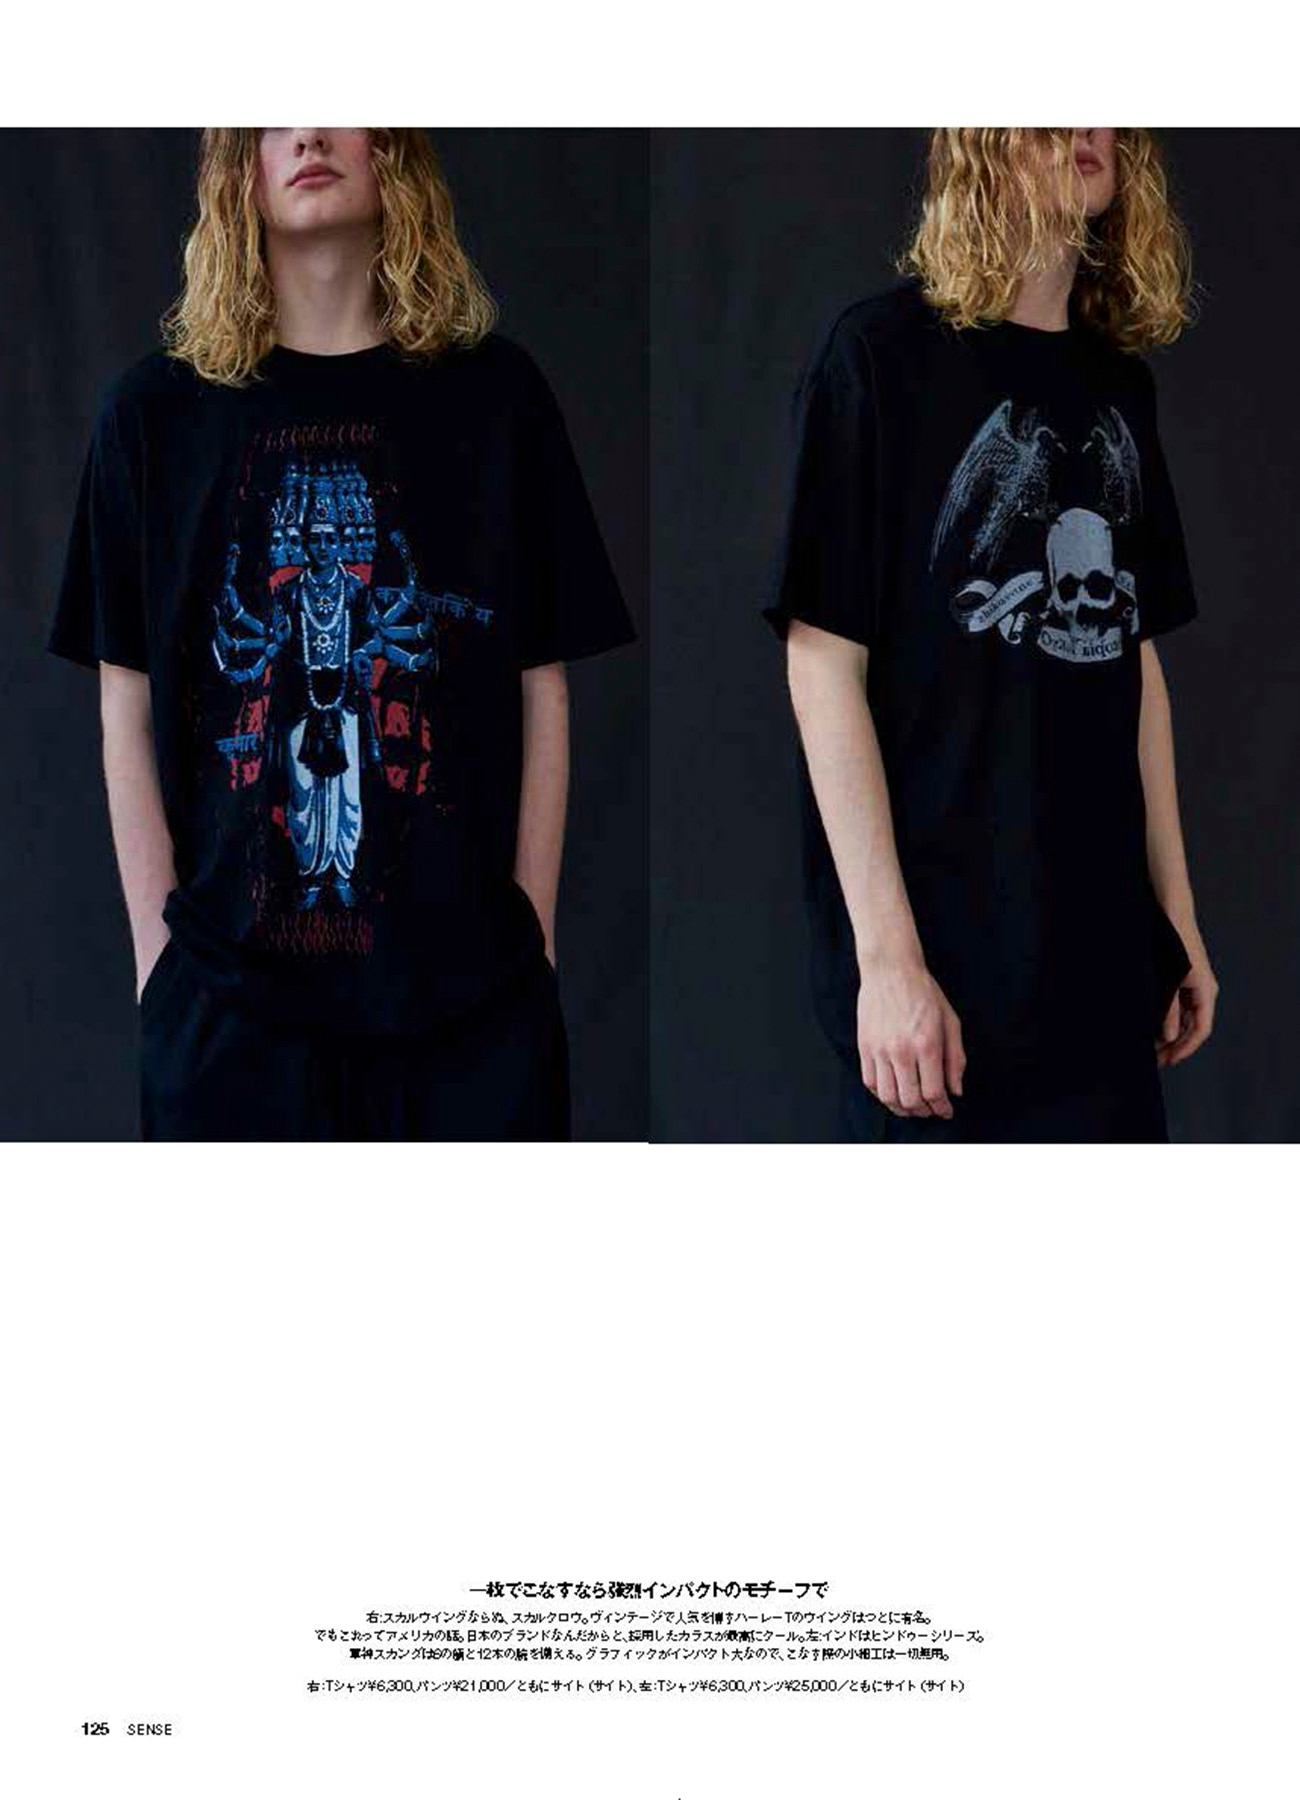 20/CottonJersey Hindu God Scanda T-Shirt